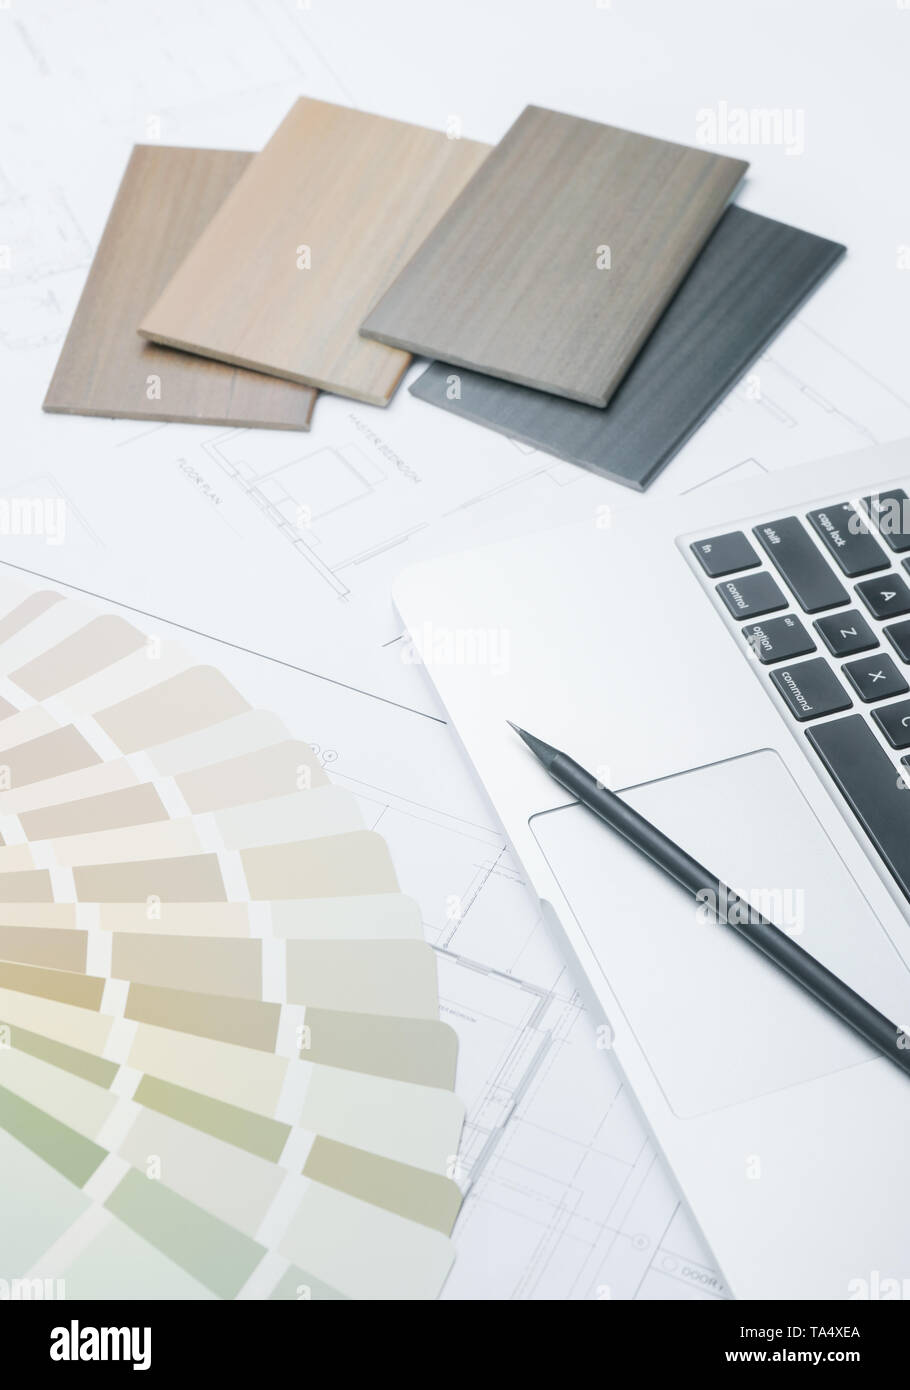 color and material samples on architectural drawings of the modern house - Stock Image